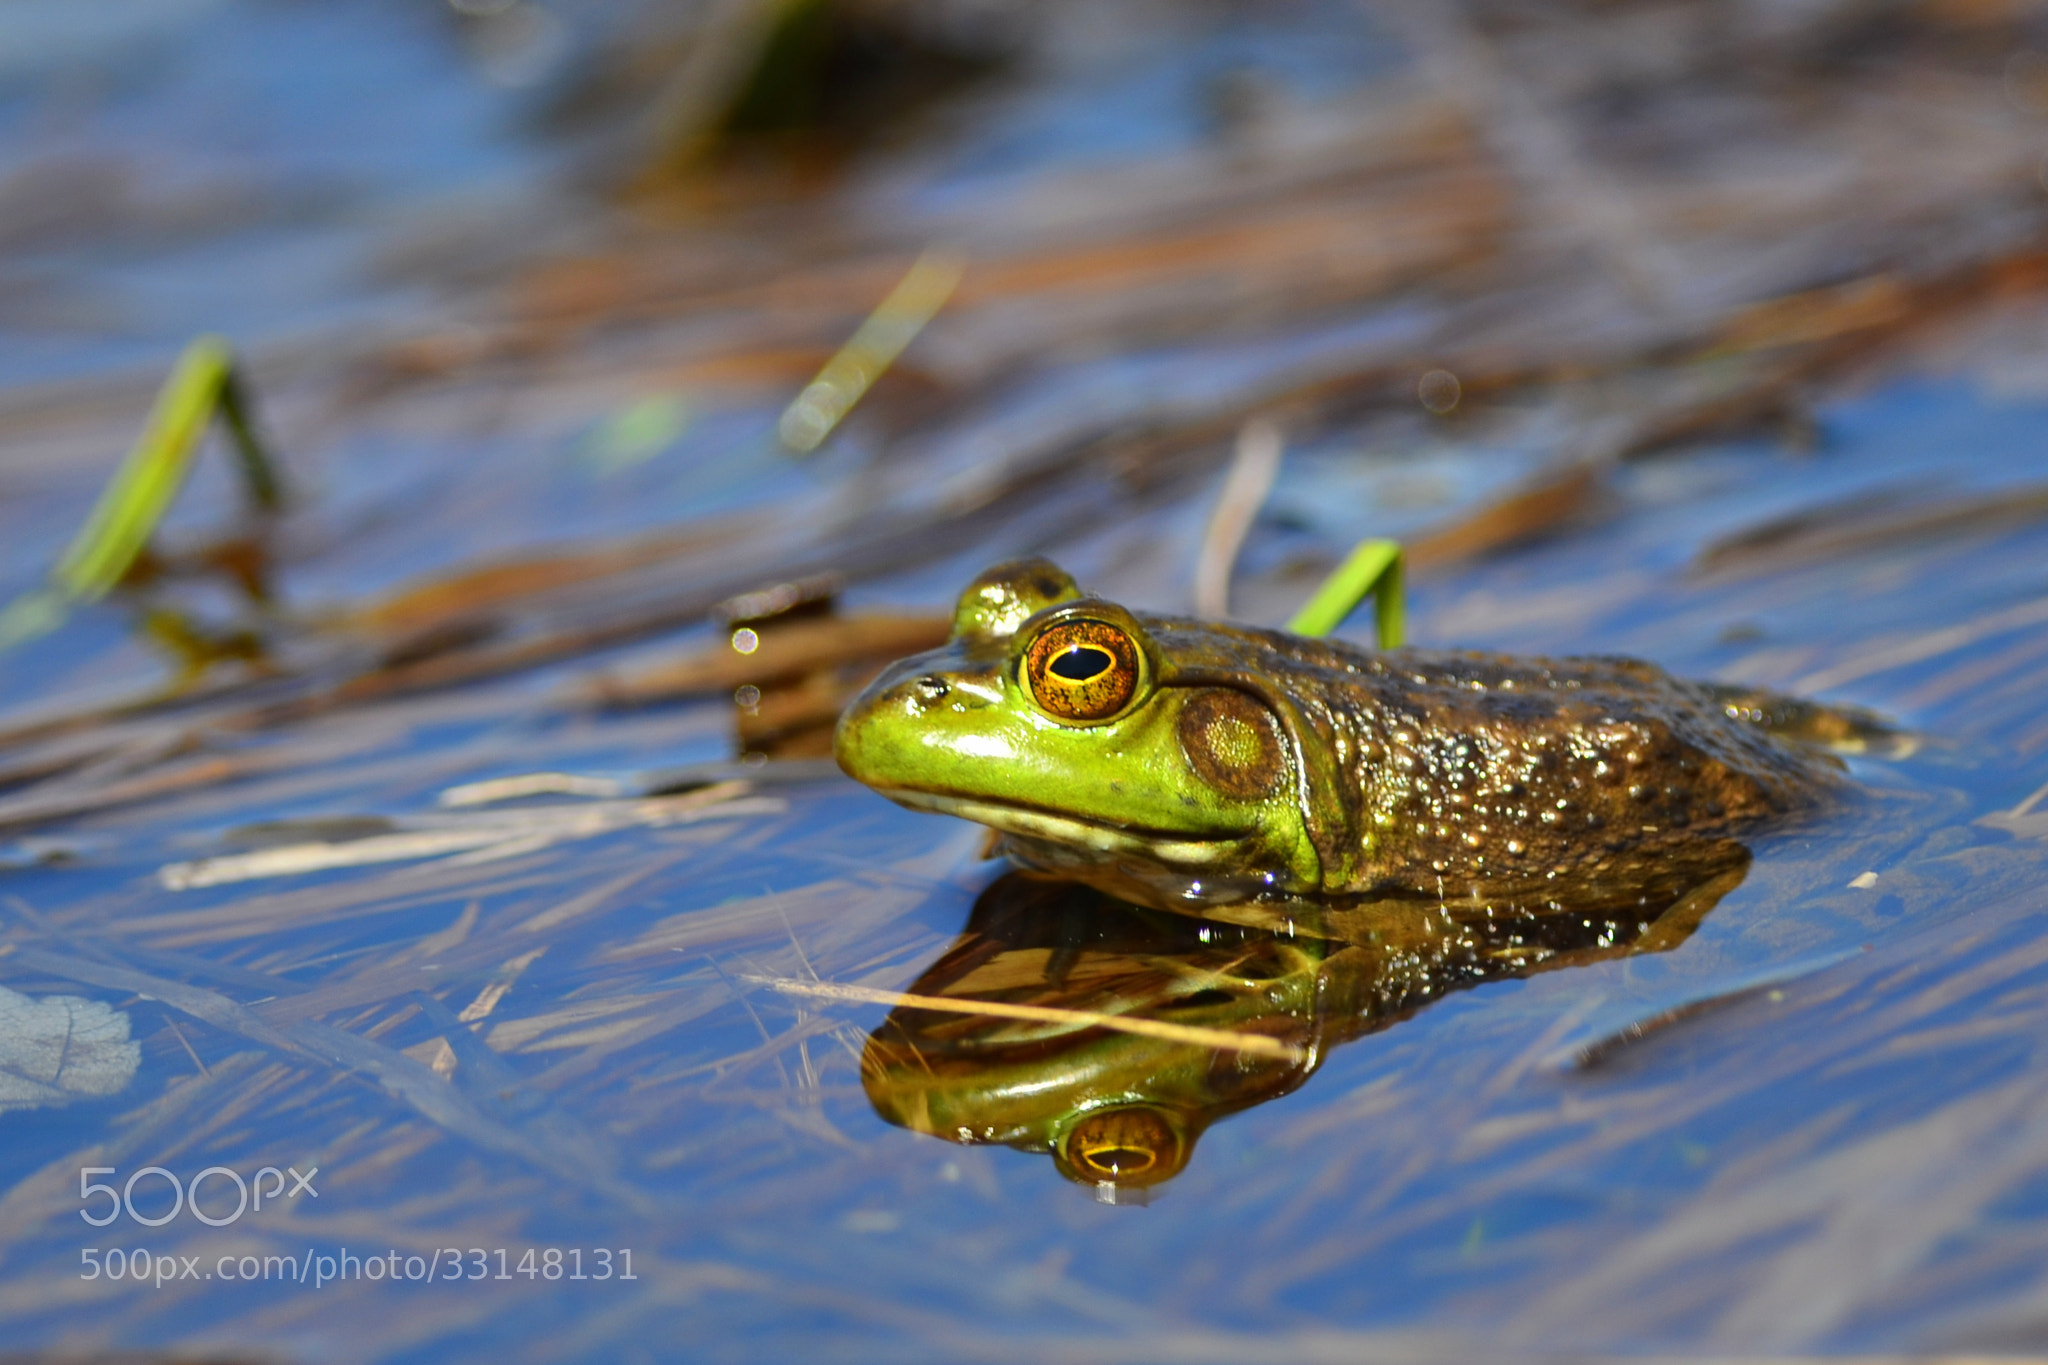 Photograph Frog2 by Eric Le Bel on 500px